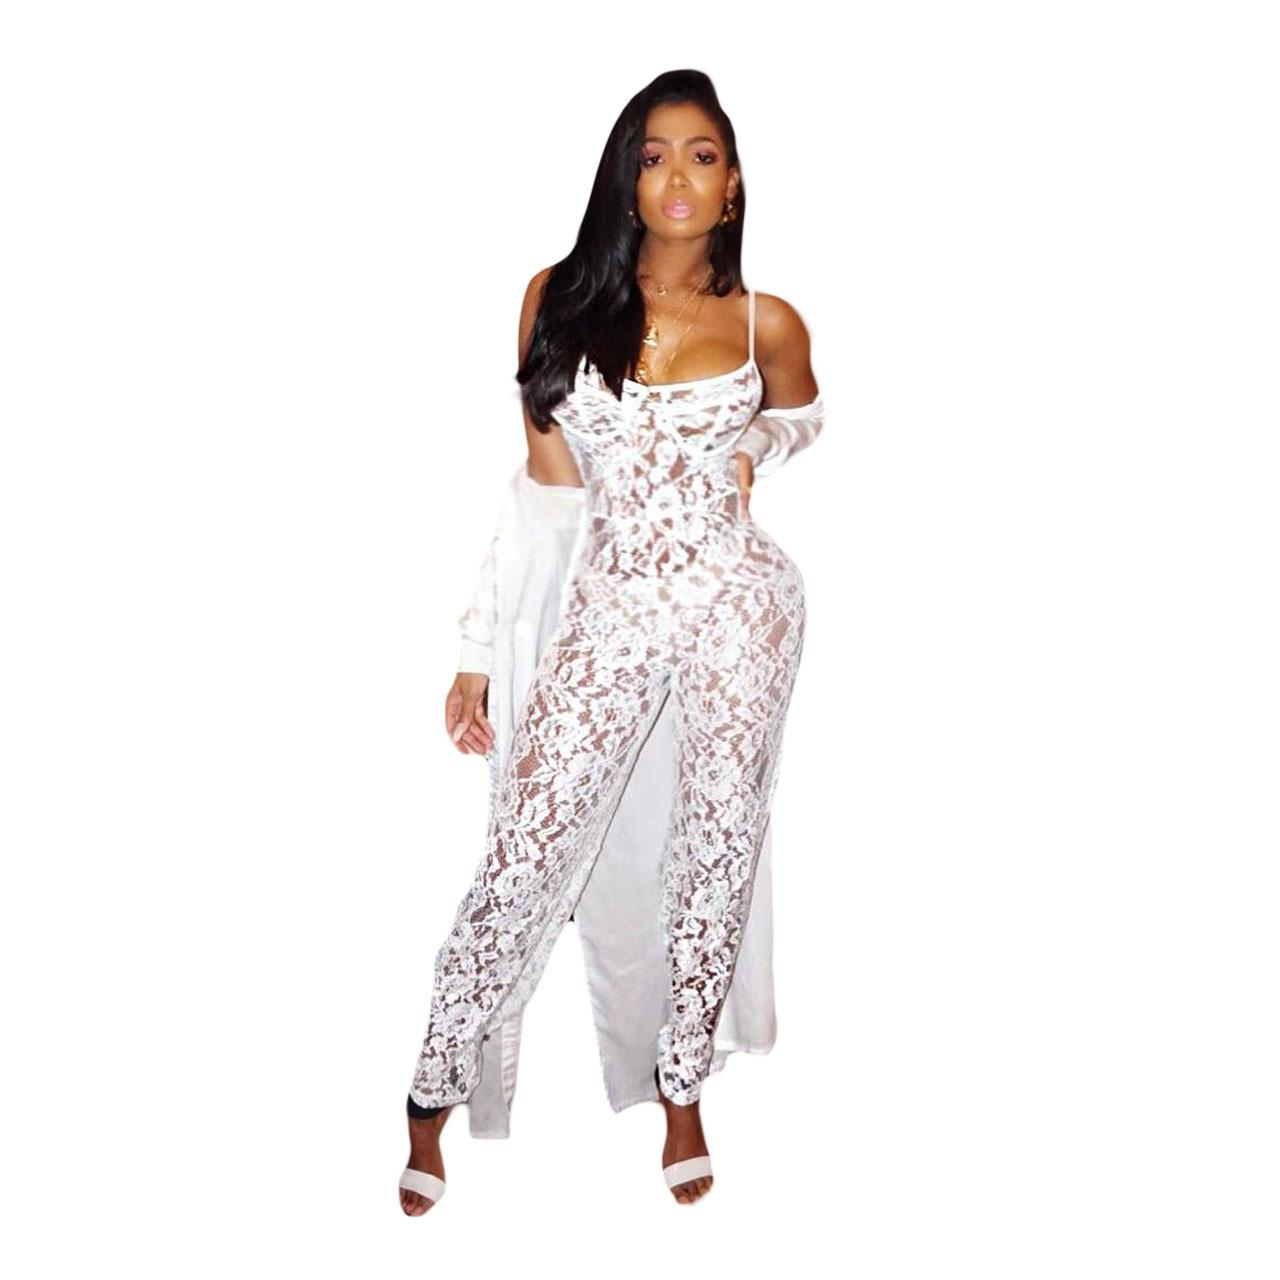 eaf2060f6af 2019 Summer White Lace Jumpsuit Women Strap See Through Bodysuit Sexy  Romper Sheer Bodycon Rompers Womens Jumpsuit Club Party Outfits From  Blueberry16